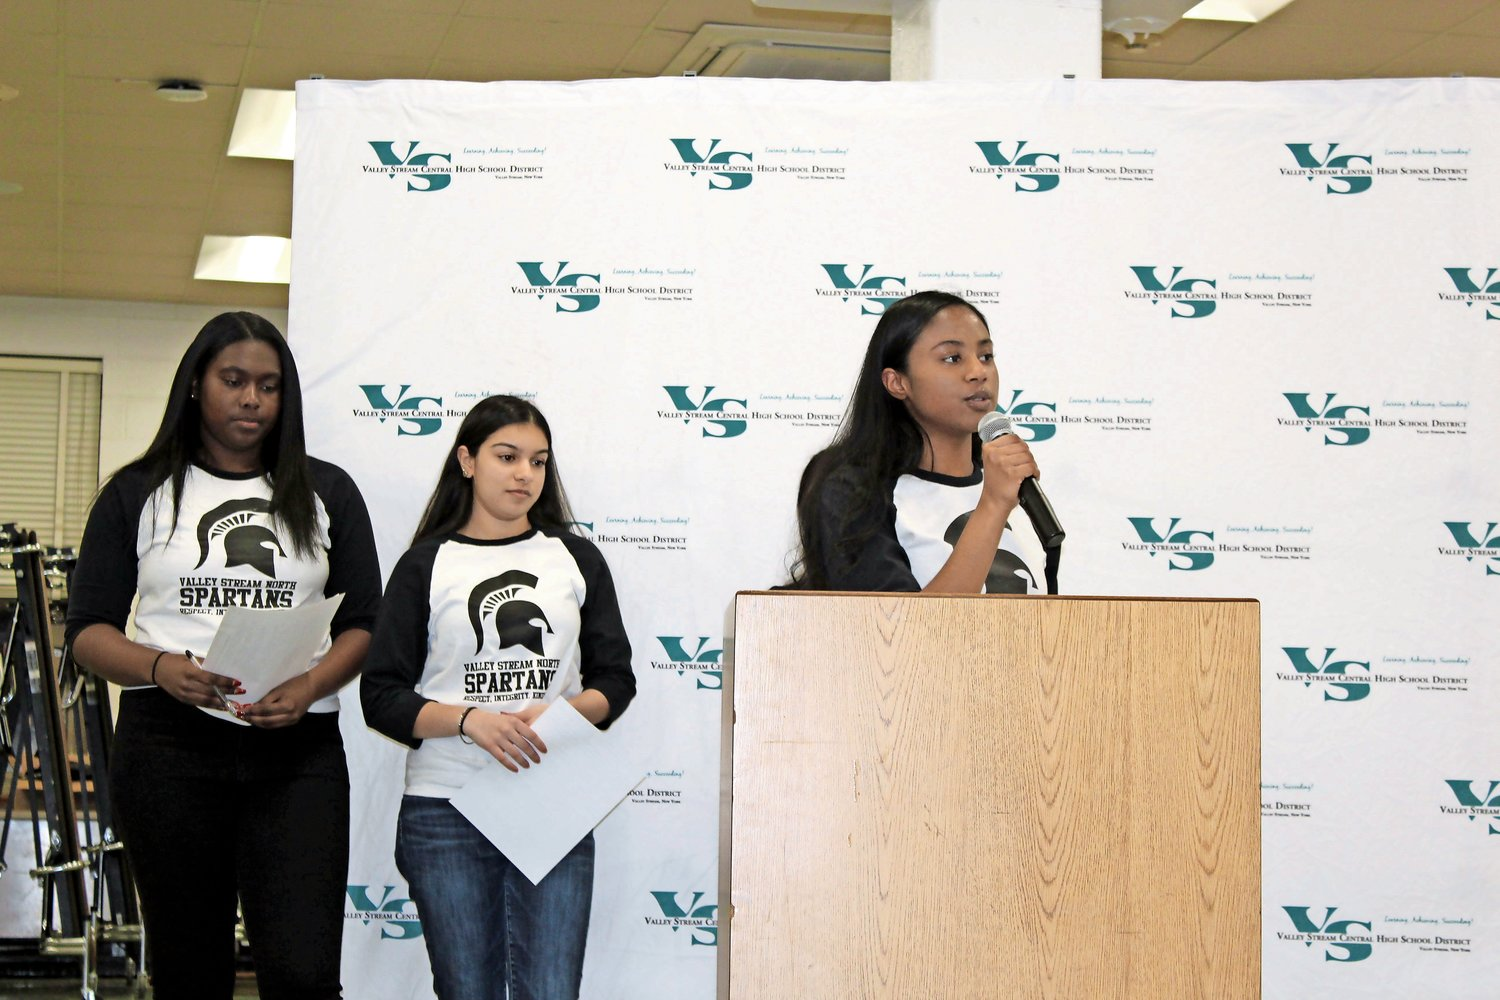 Students including Sumaiya Ramsaroop, right, spoke about the condition of Valley Stream North High School. Simar Thind and Sasha Smalls followed her.